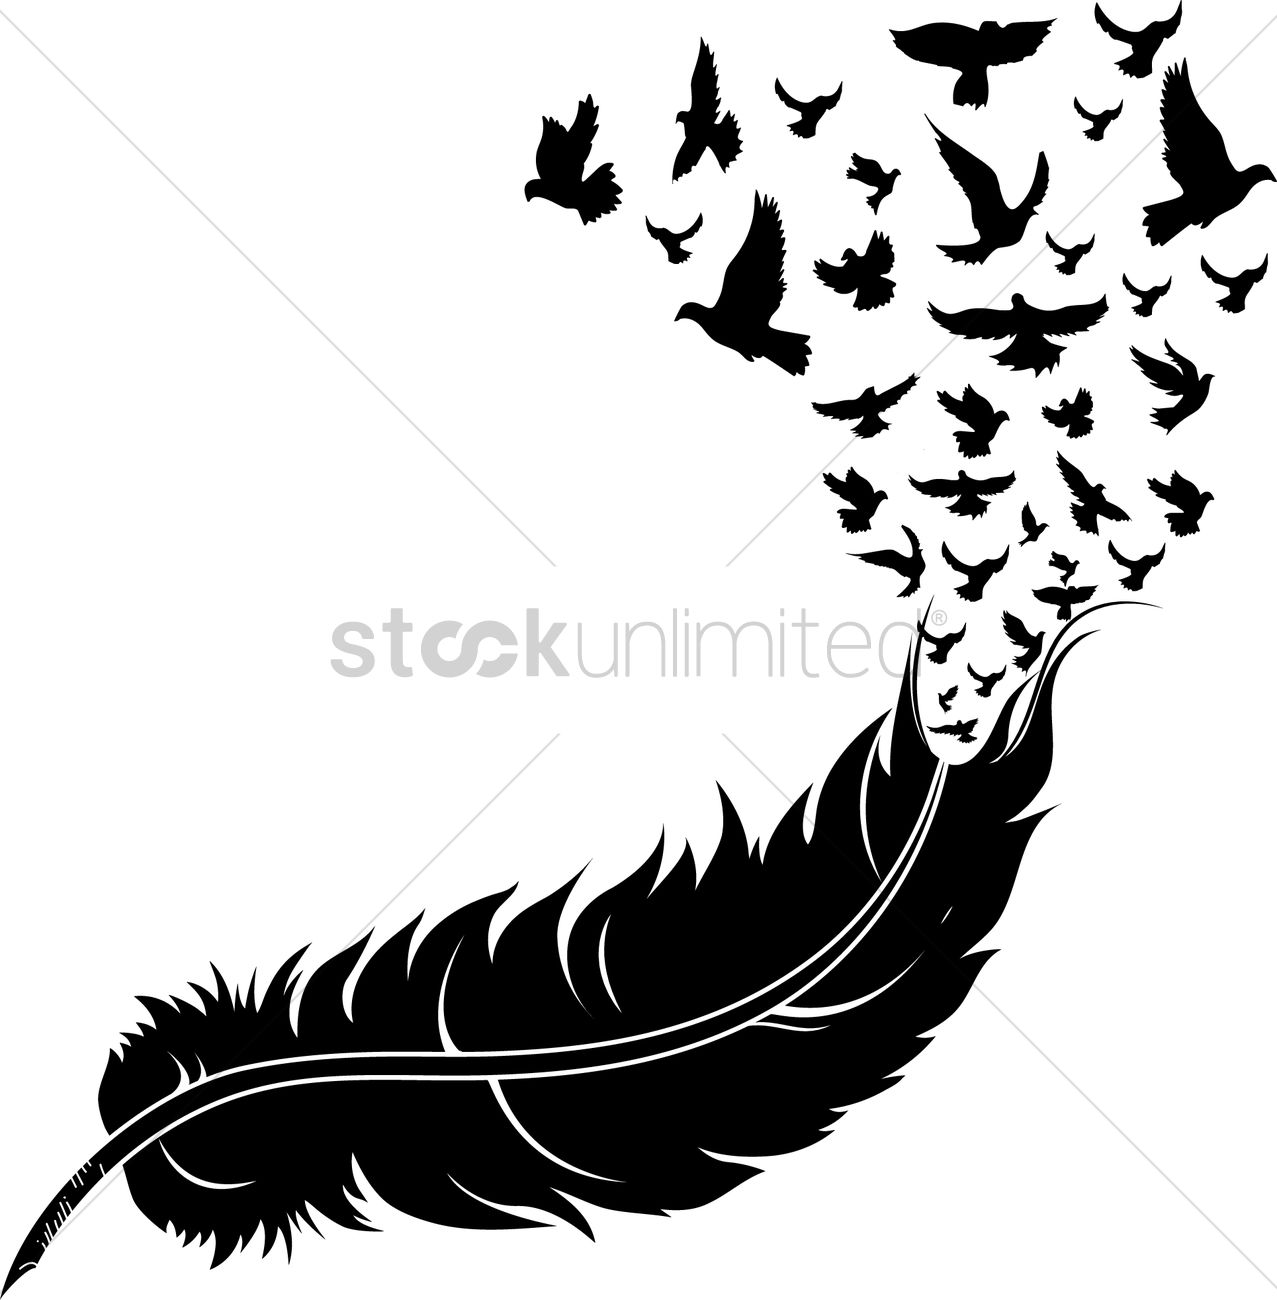 Feather With Birds Vector Image